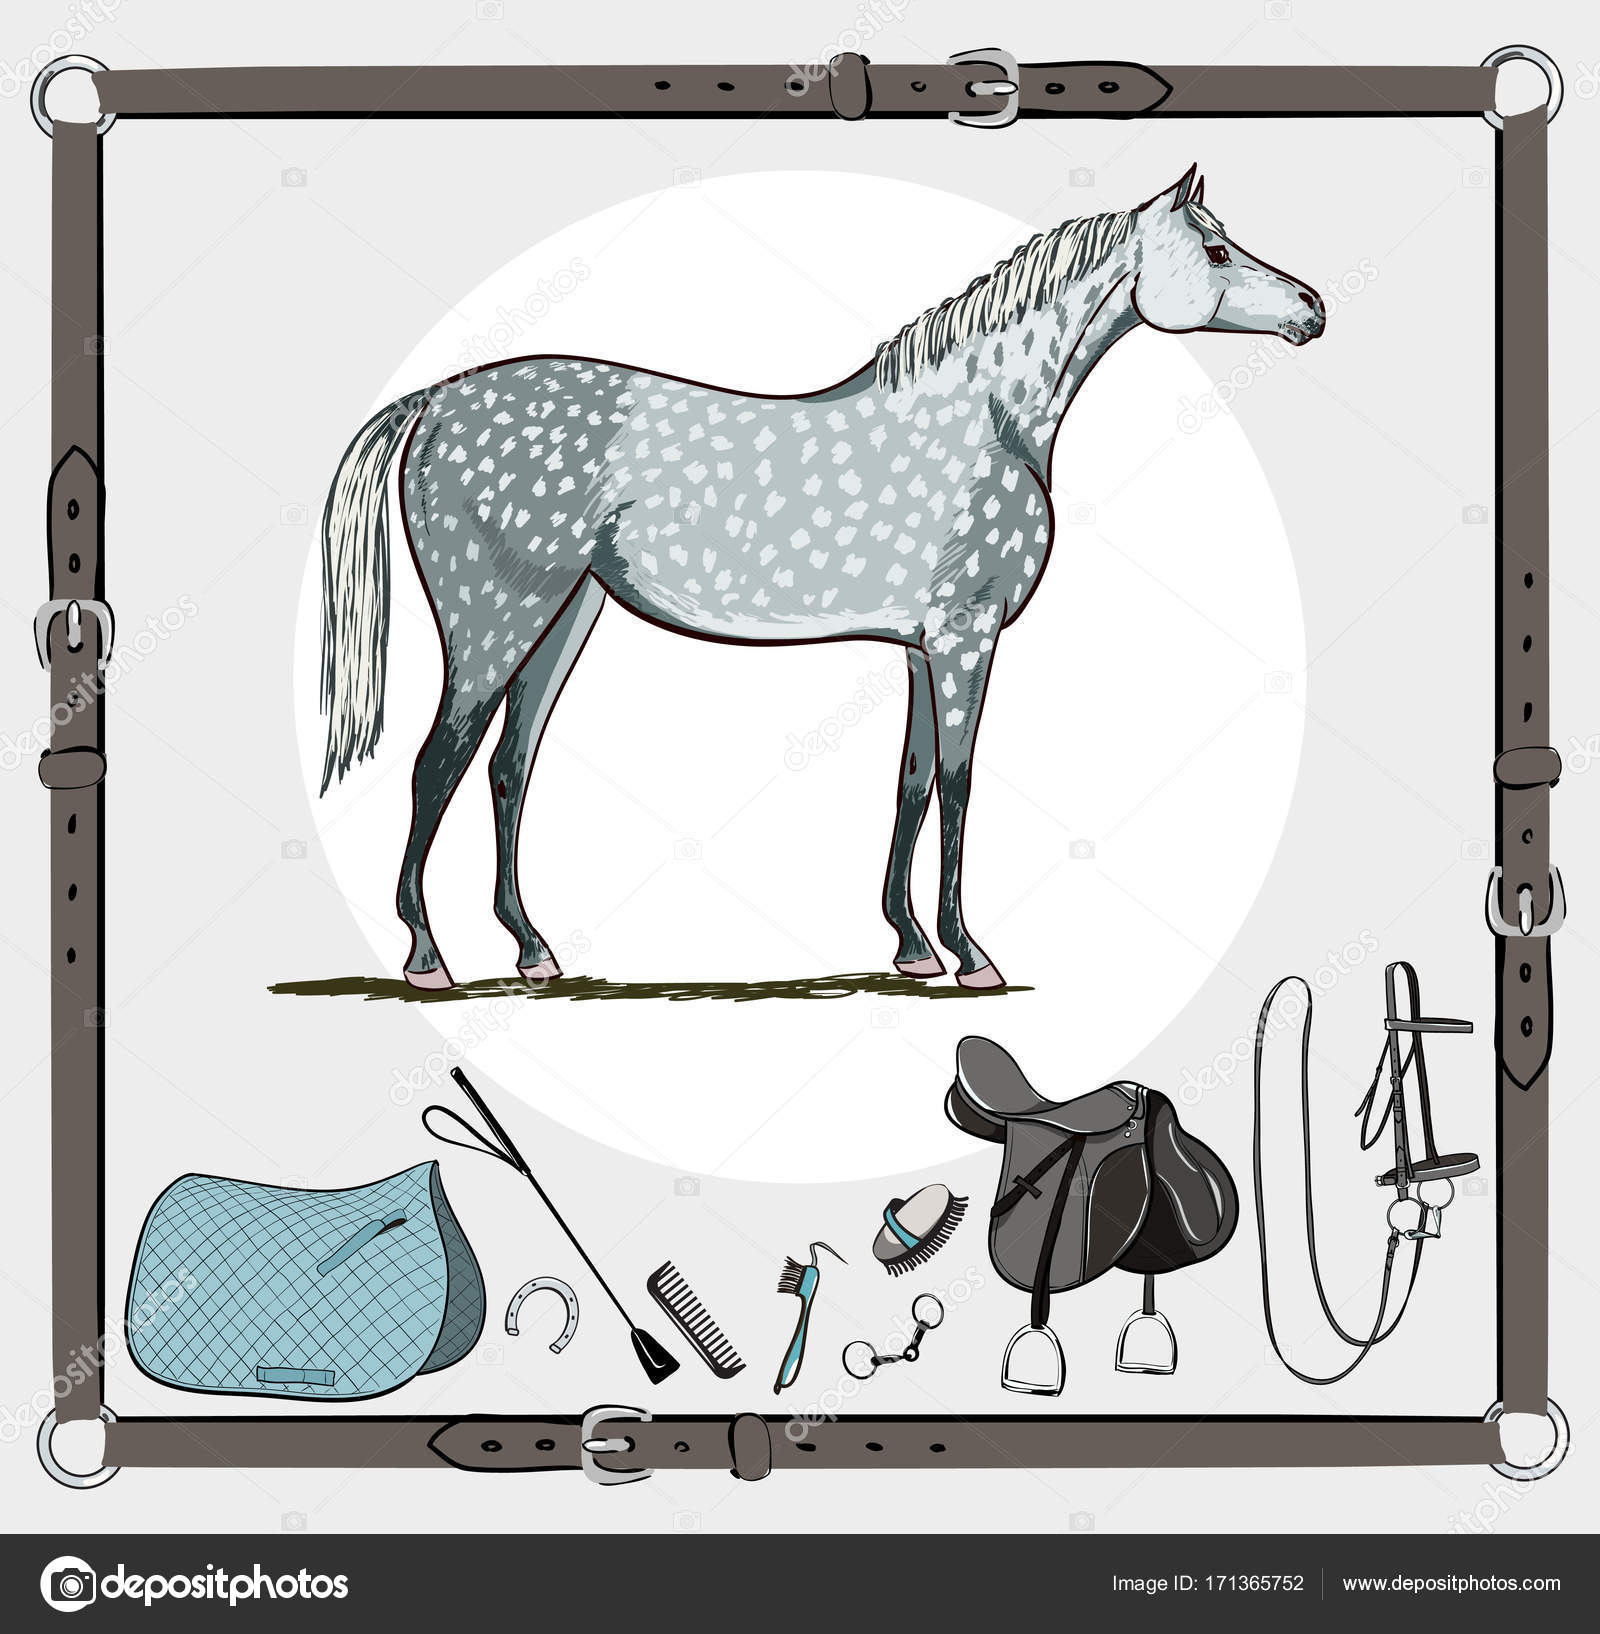 horse and riding tack tools in leather belt frame bridle saddle rh depositphotos com Equestrian Riding Clip Art Equestrian Riding Clip Art